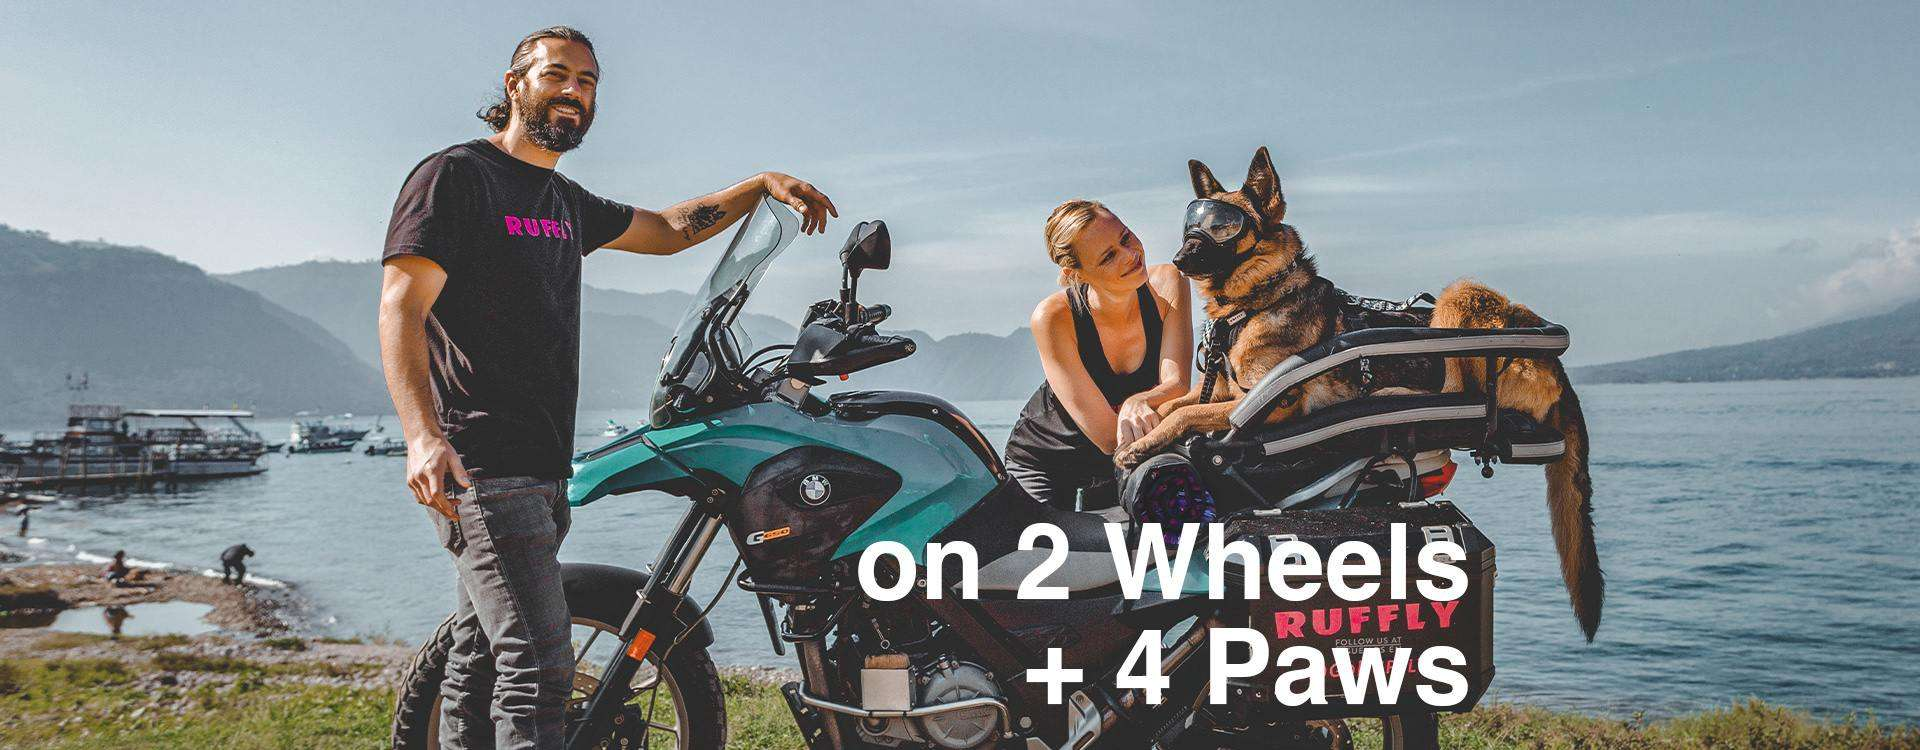 Man, woman, and German Shepherd on adventure motorcycle at turquoise lake with volcanoes